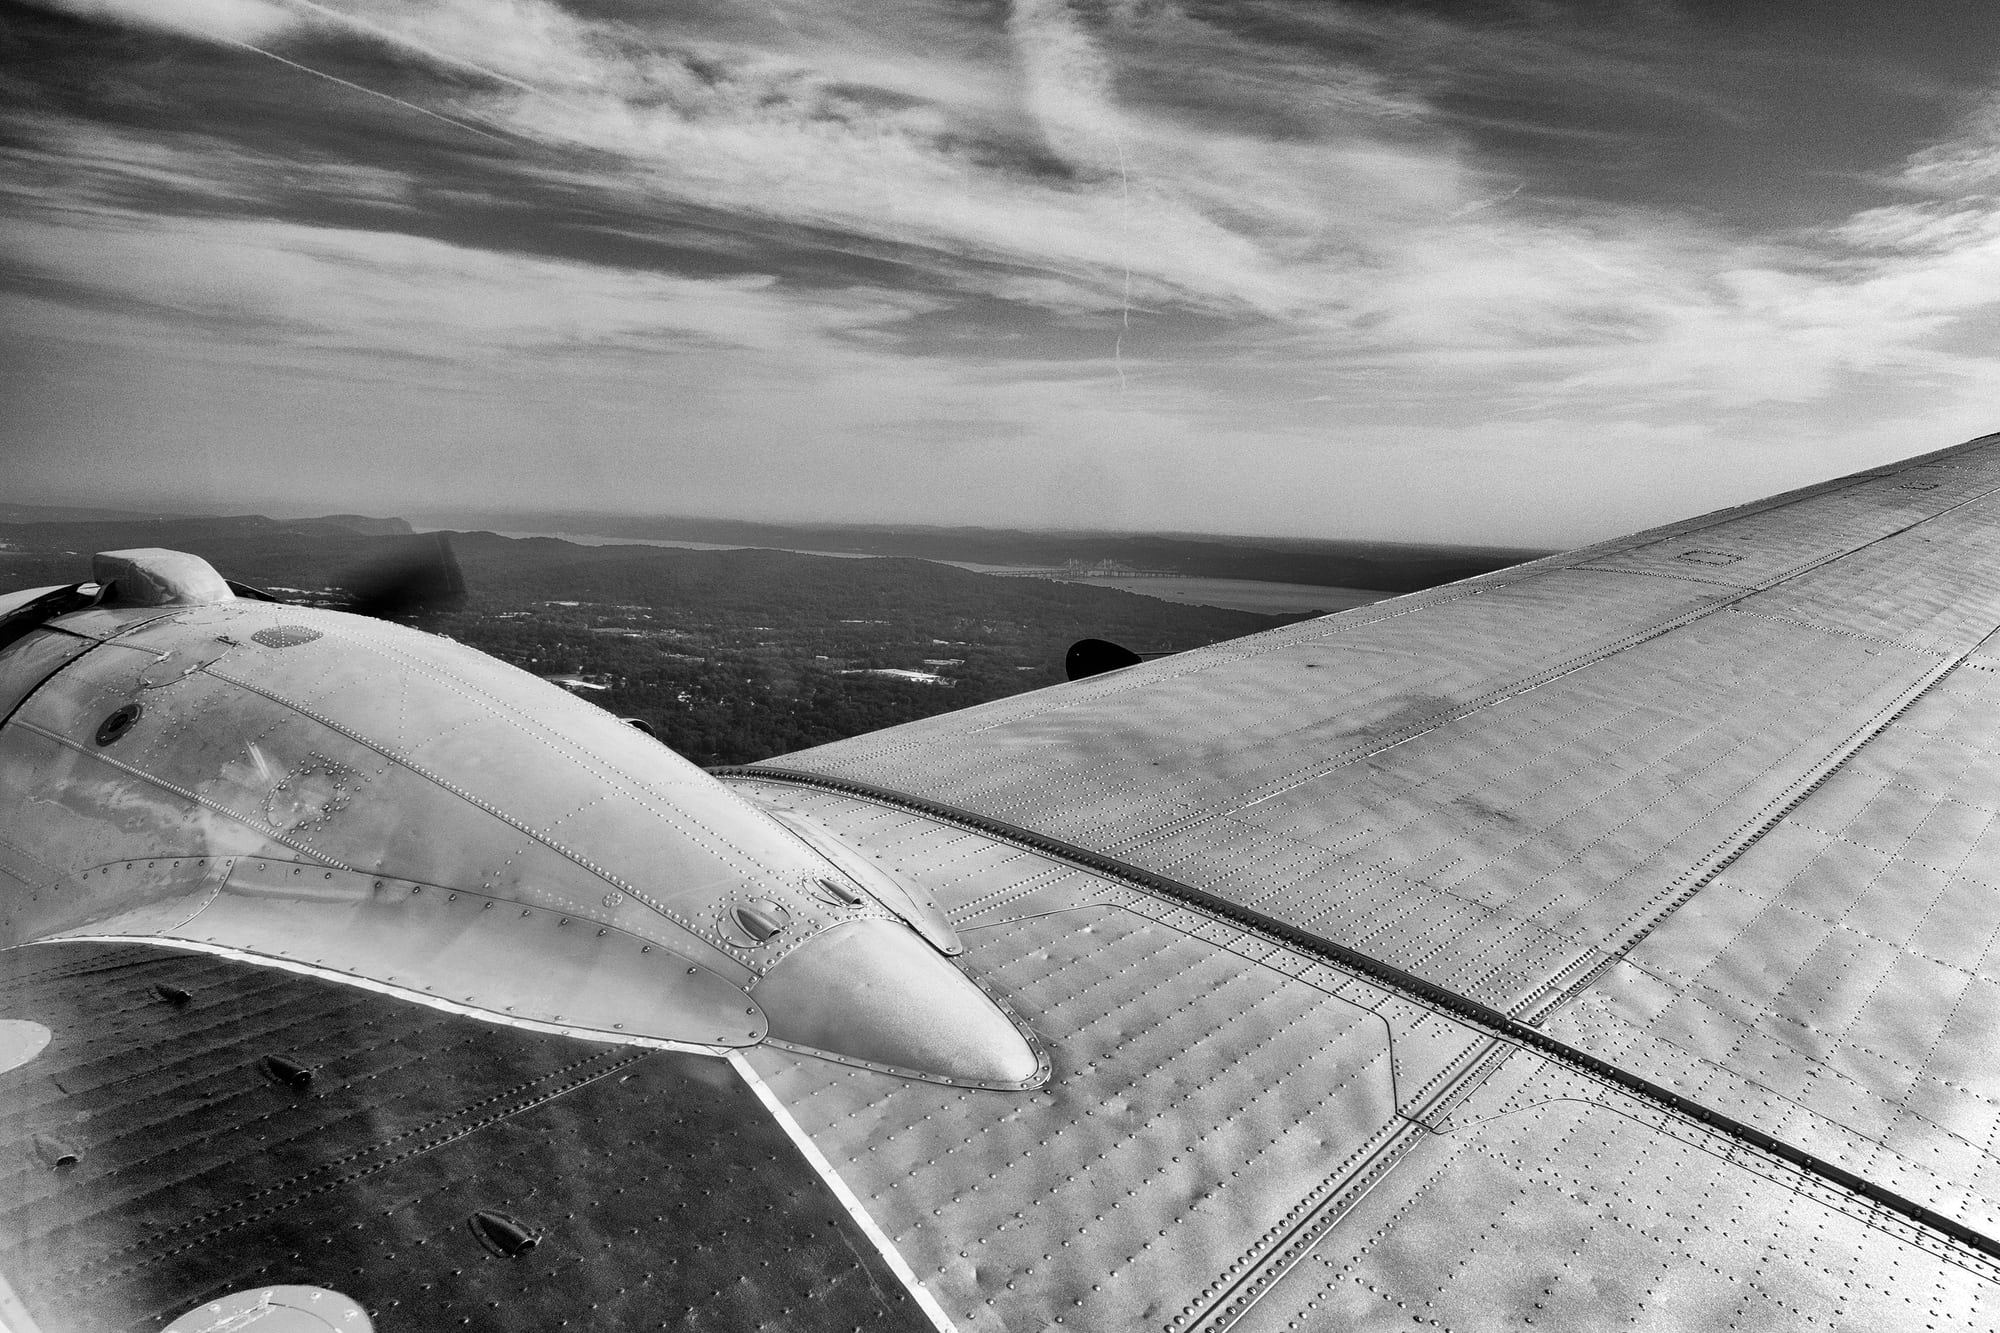 Breitling DC-3 engine cowling  Dispatches: Breitling's DC-3 To Become Oldest Aircraft Ever To Circle The Earth Dispatches: Breitling's DC-3 To Become Oldest Aircraft Ever To Circle The Earth P8212258 bw